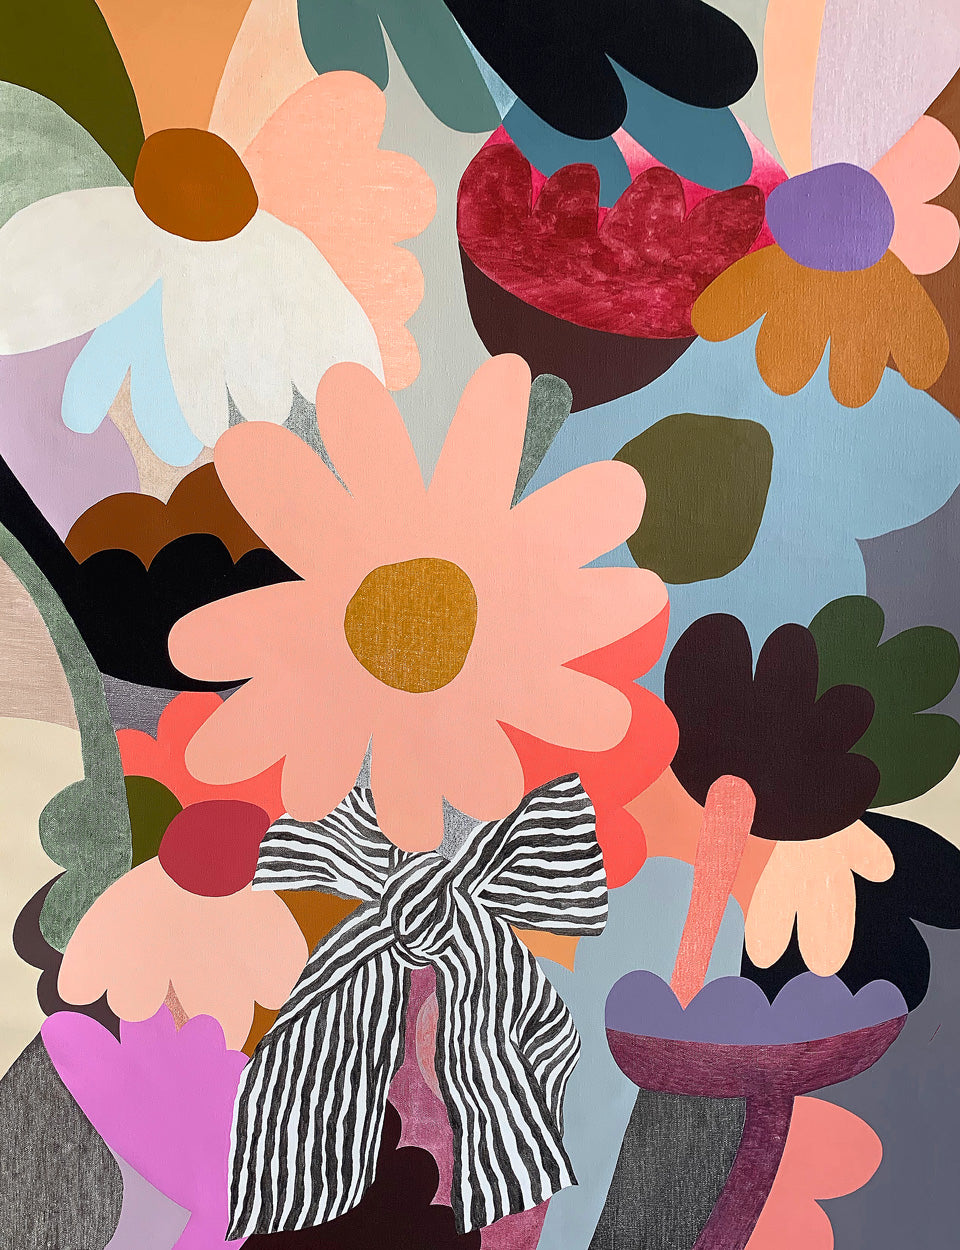 Big Posy 3 painting by Rachel Castle. 1100mm w x 1430mm h